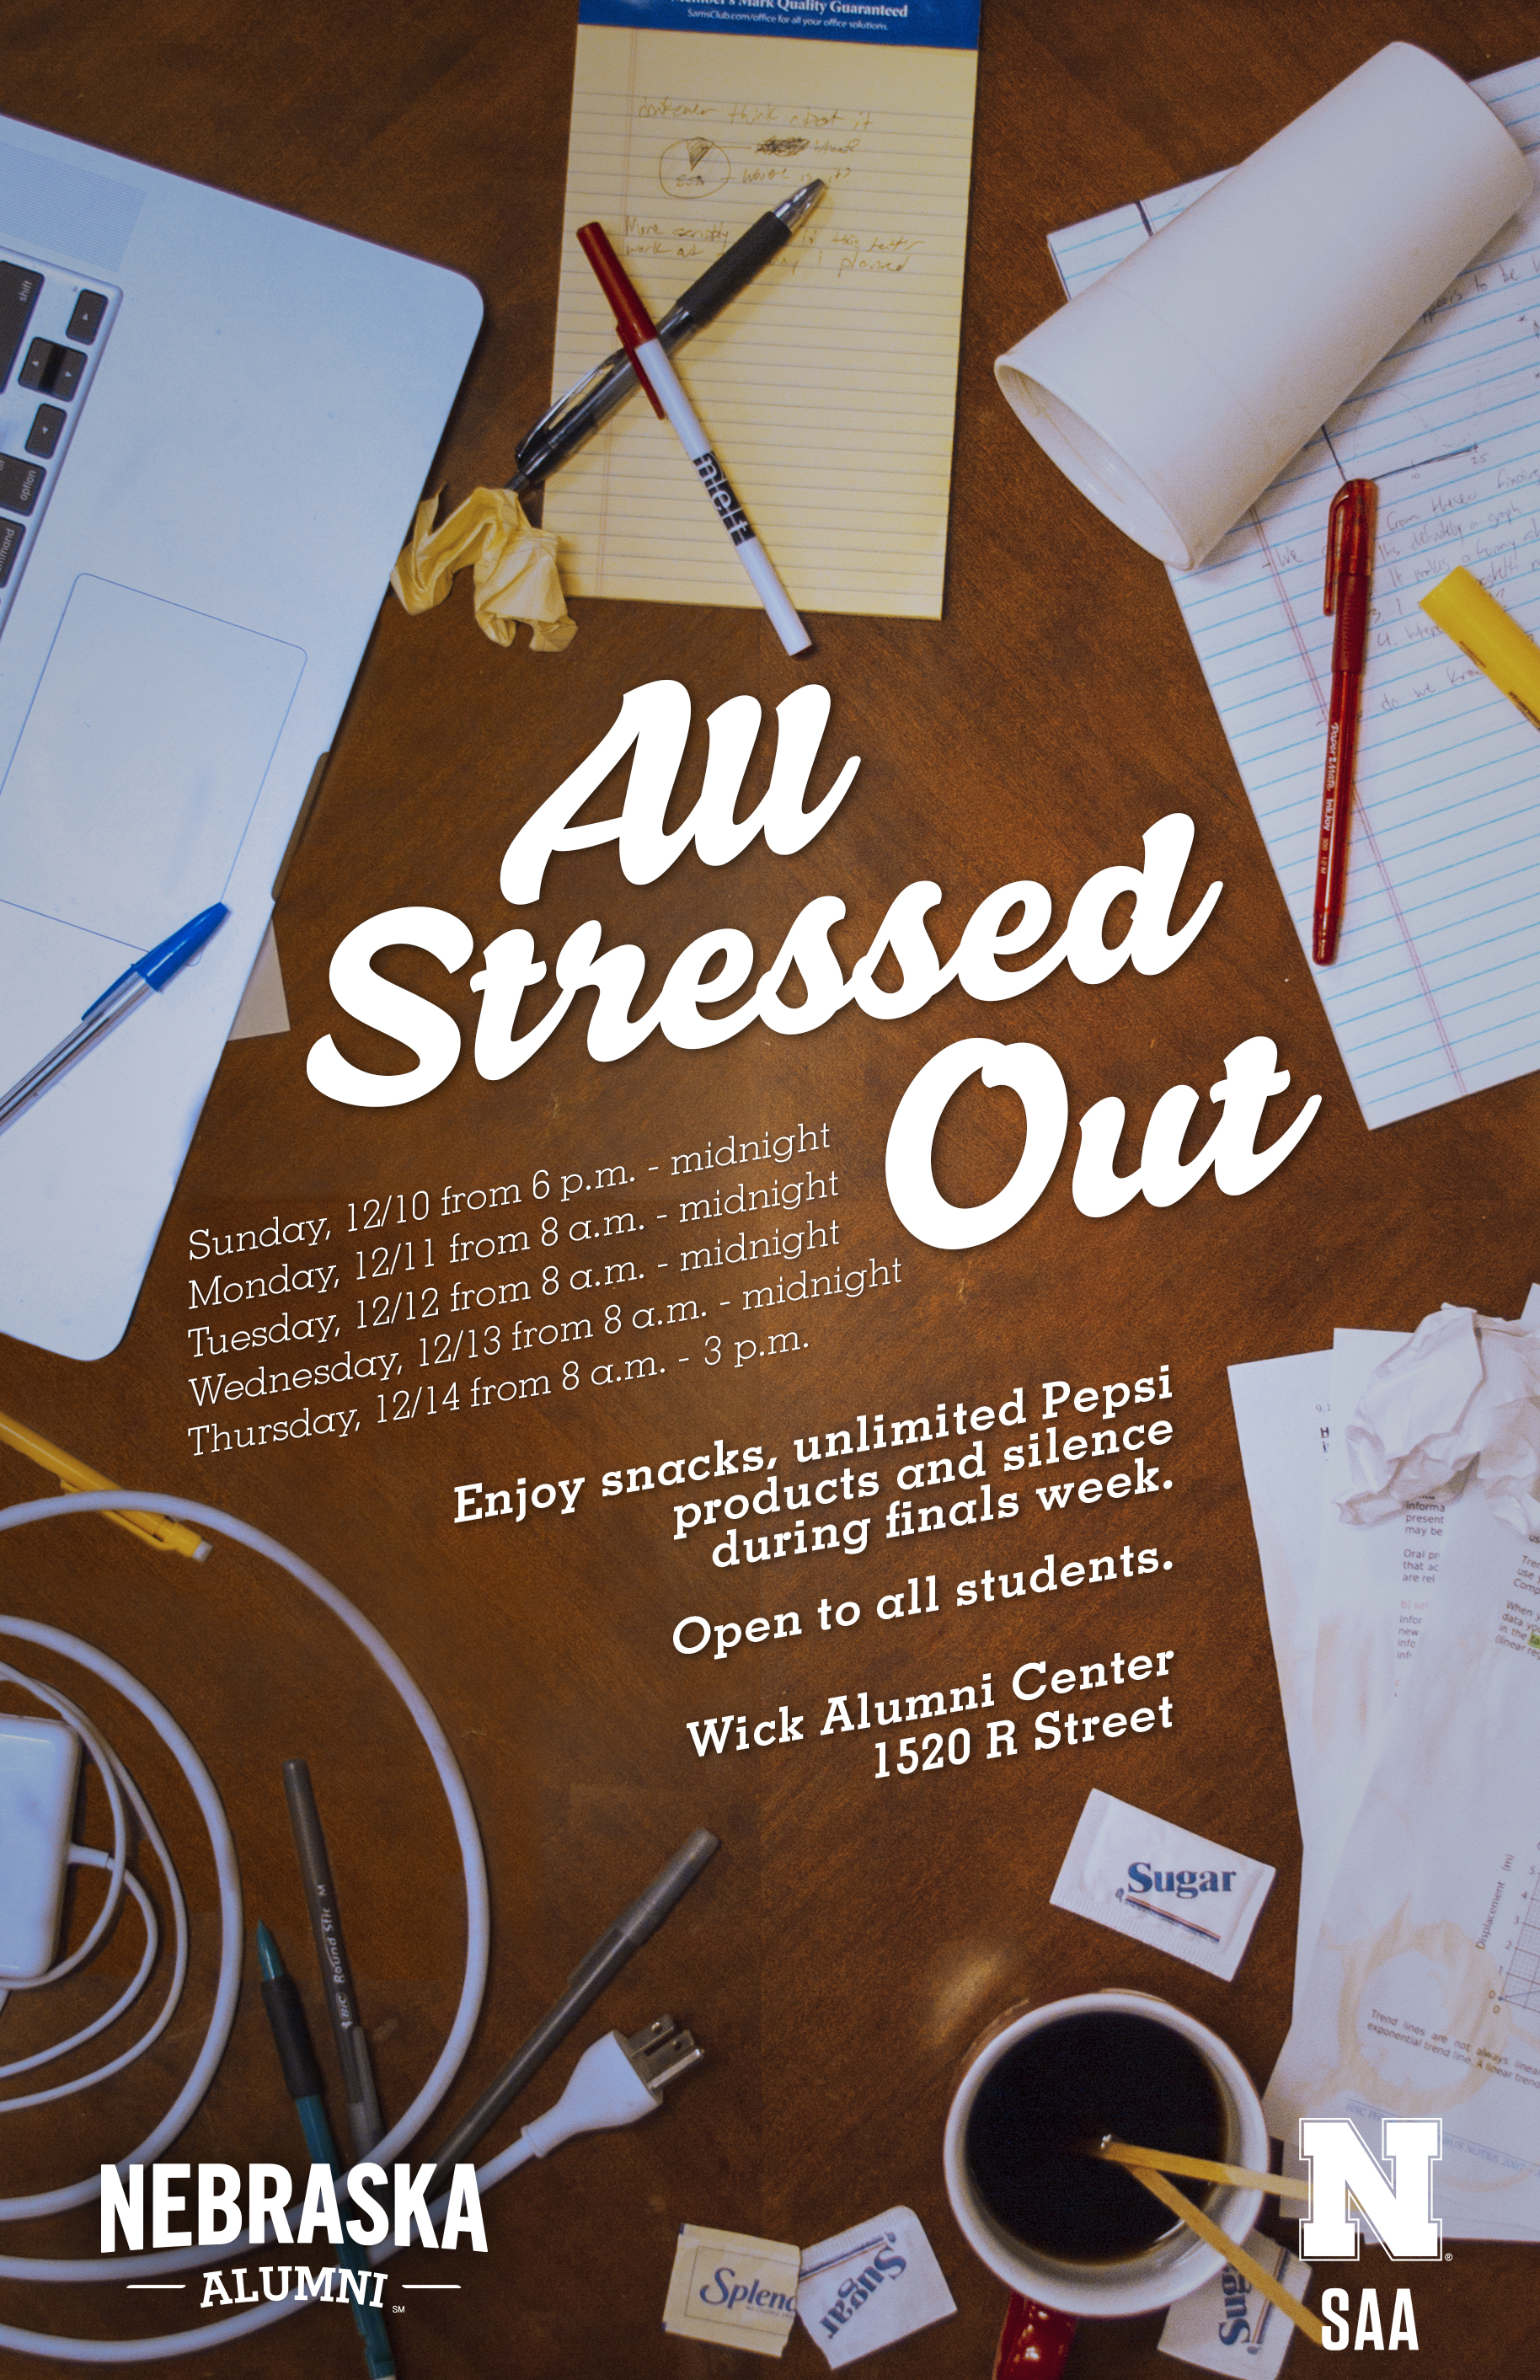 Looking for a quiet place to study? Join us for All Stressed Out this Dec. 10-14 at the Wick Alumni Center